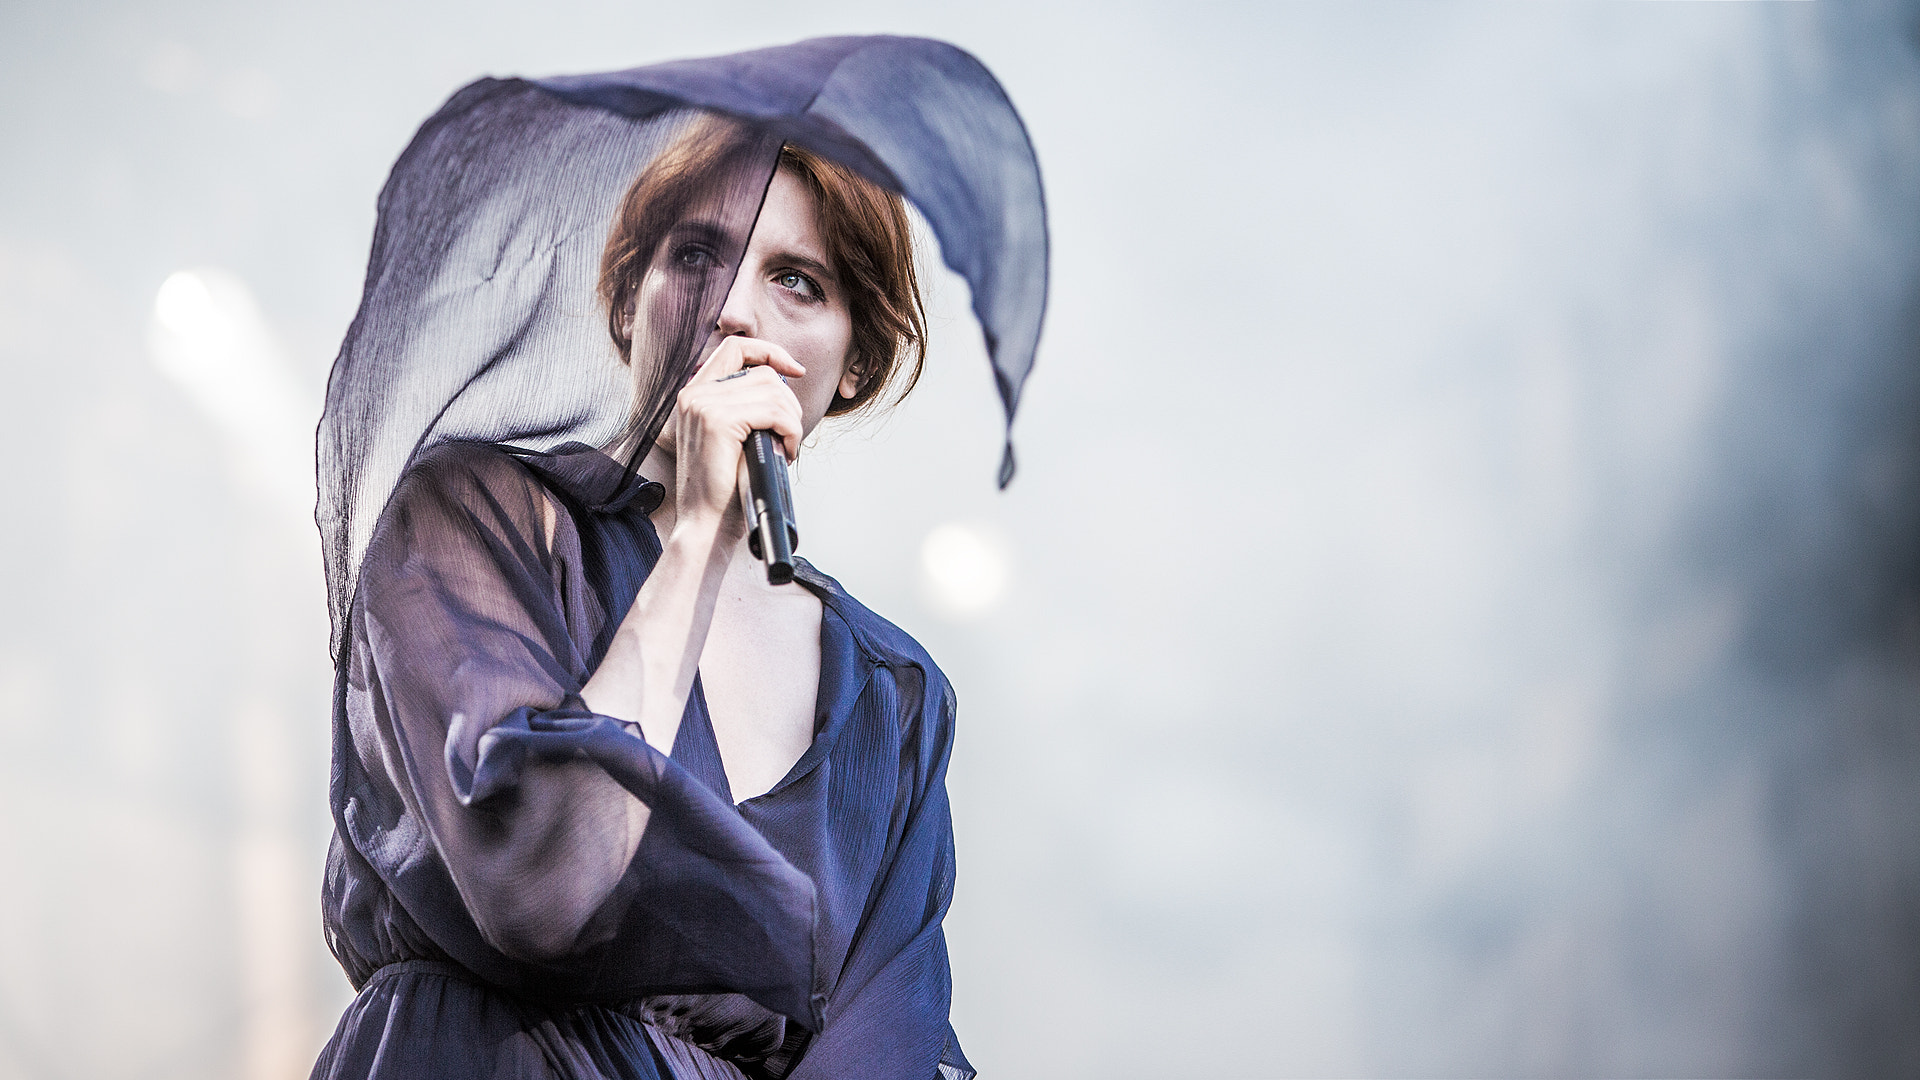 Photograph Florence + The Machine by Kim Erlandsen on 500px